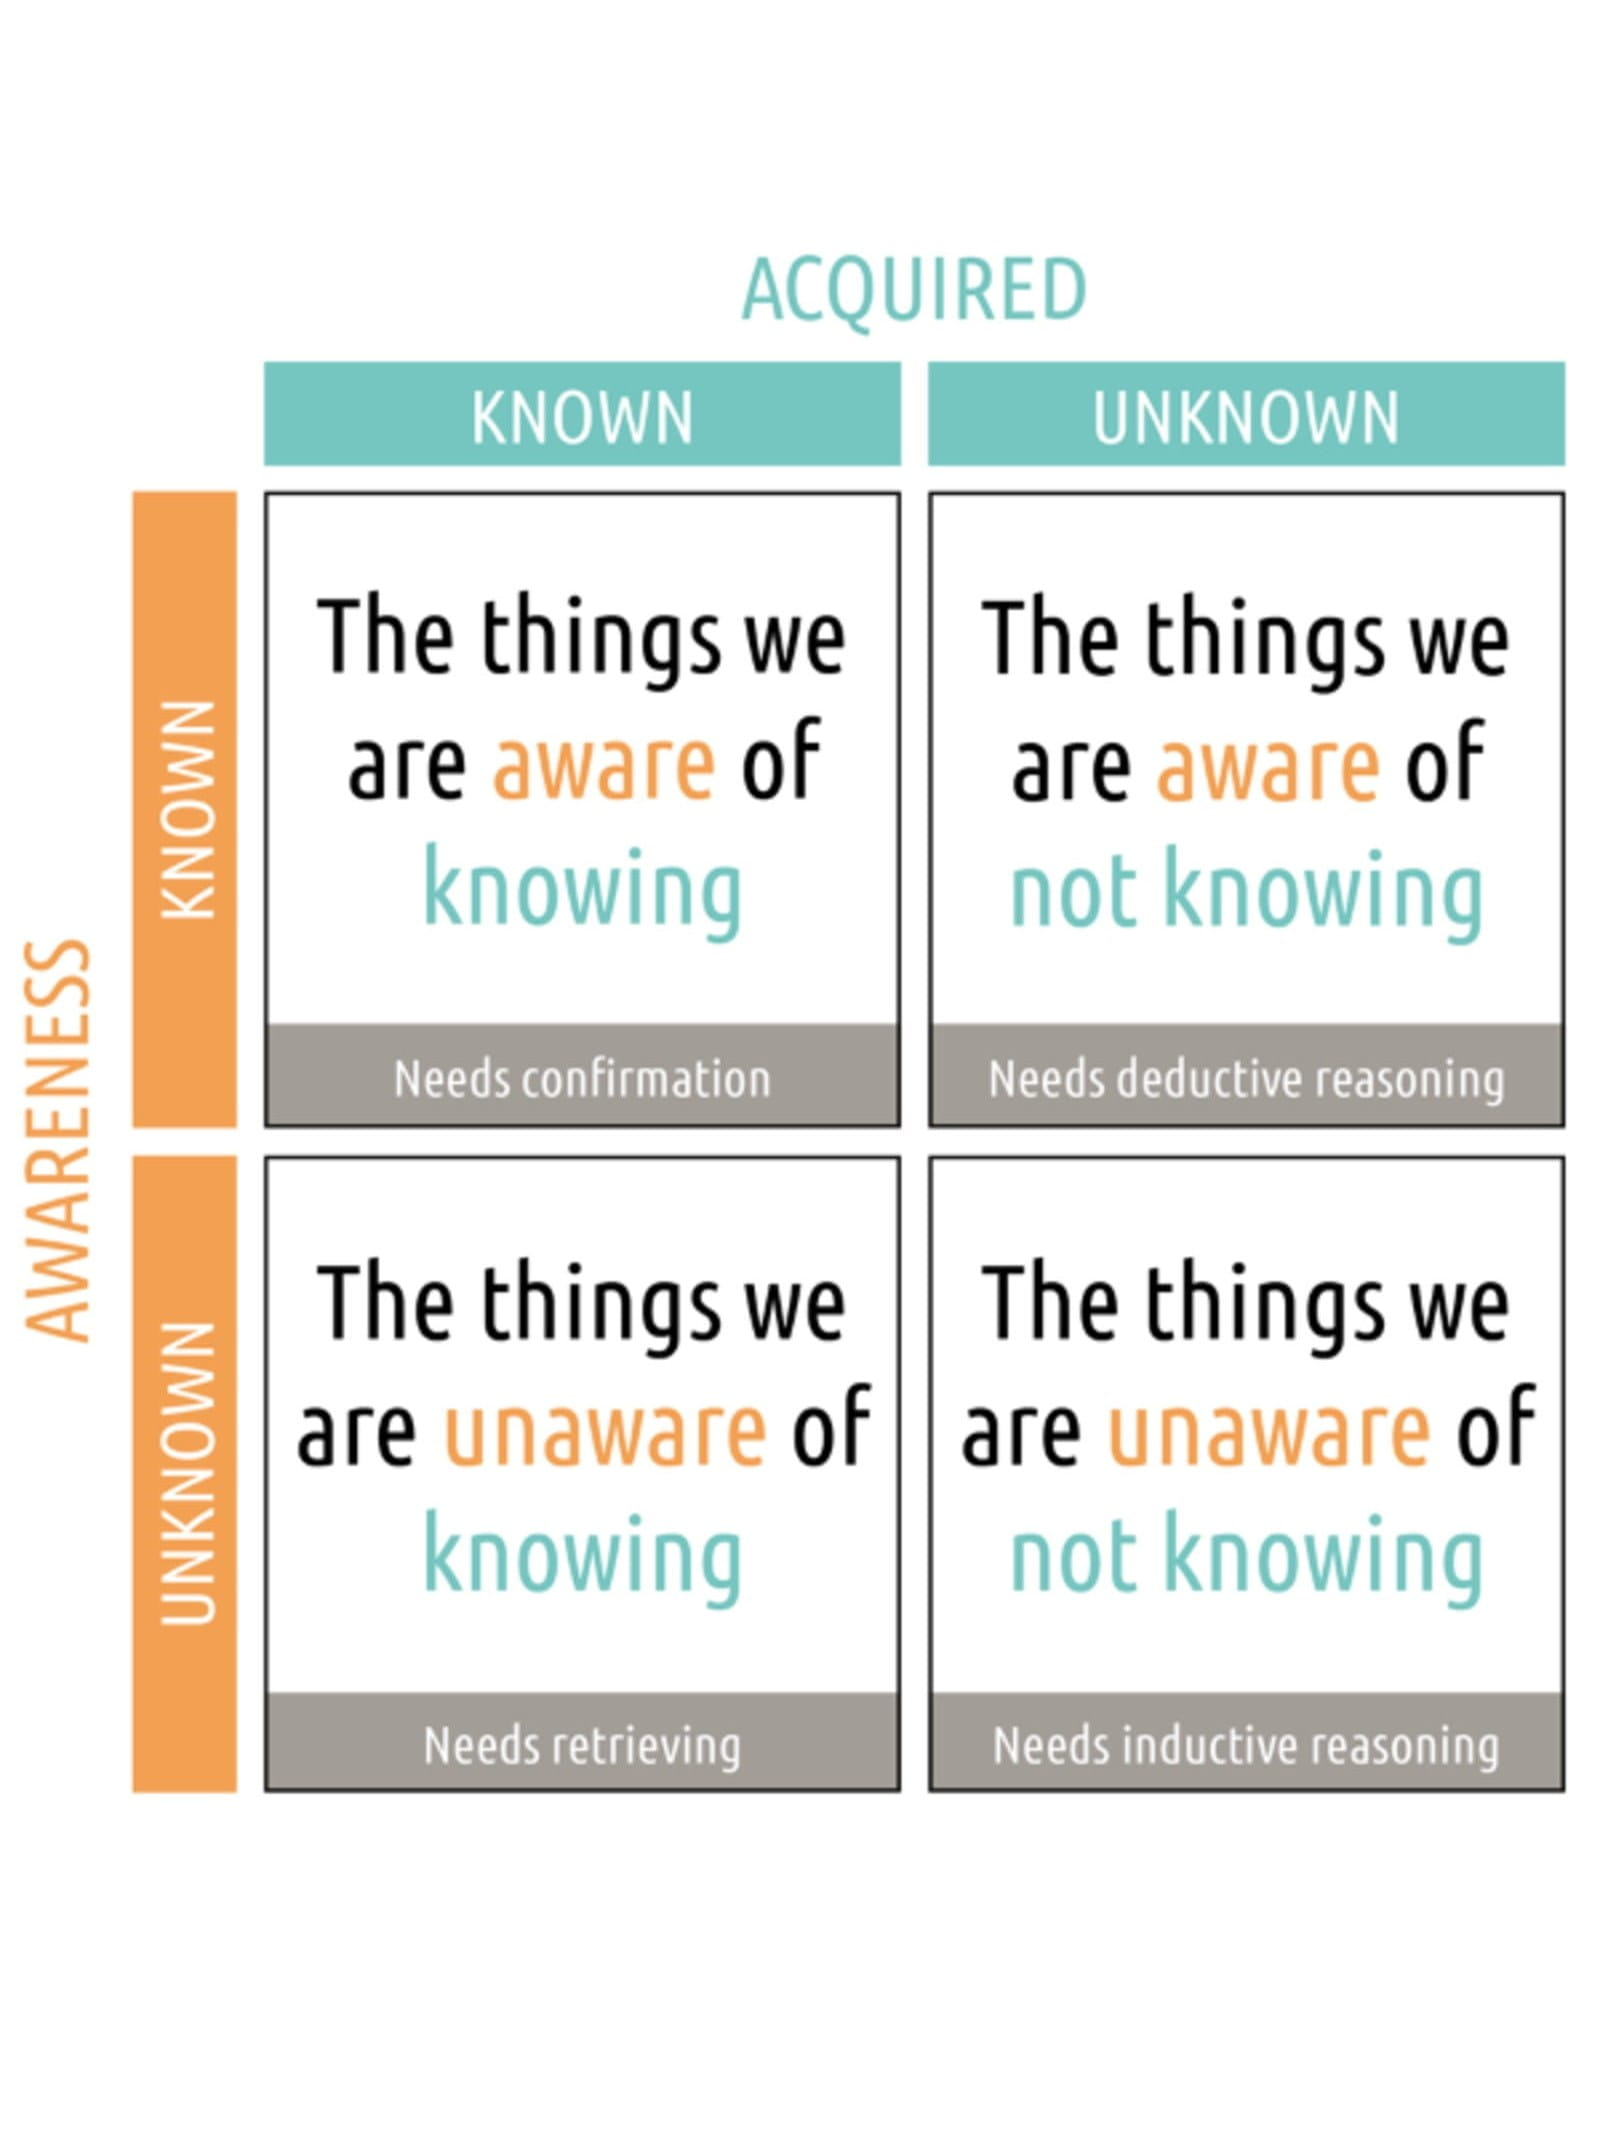 Image showing knowns and unknowns